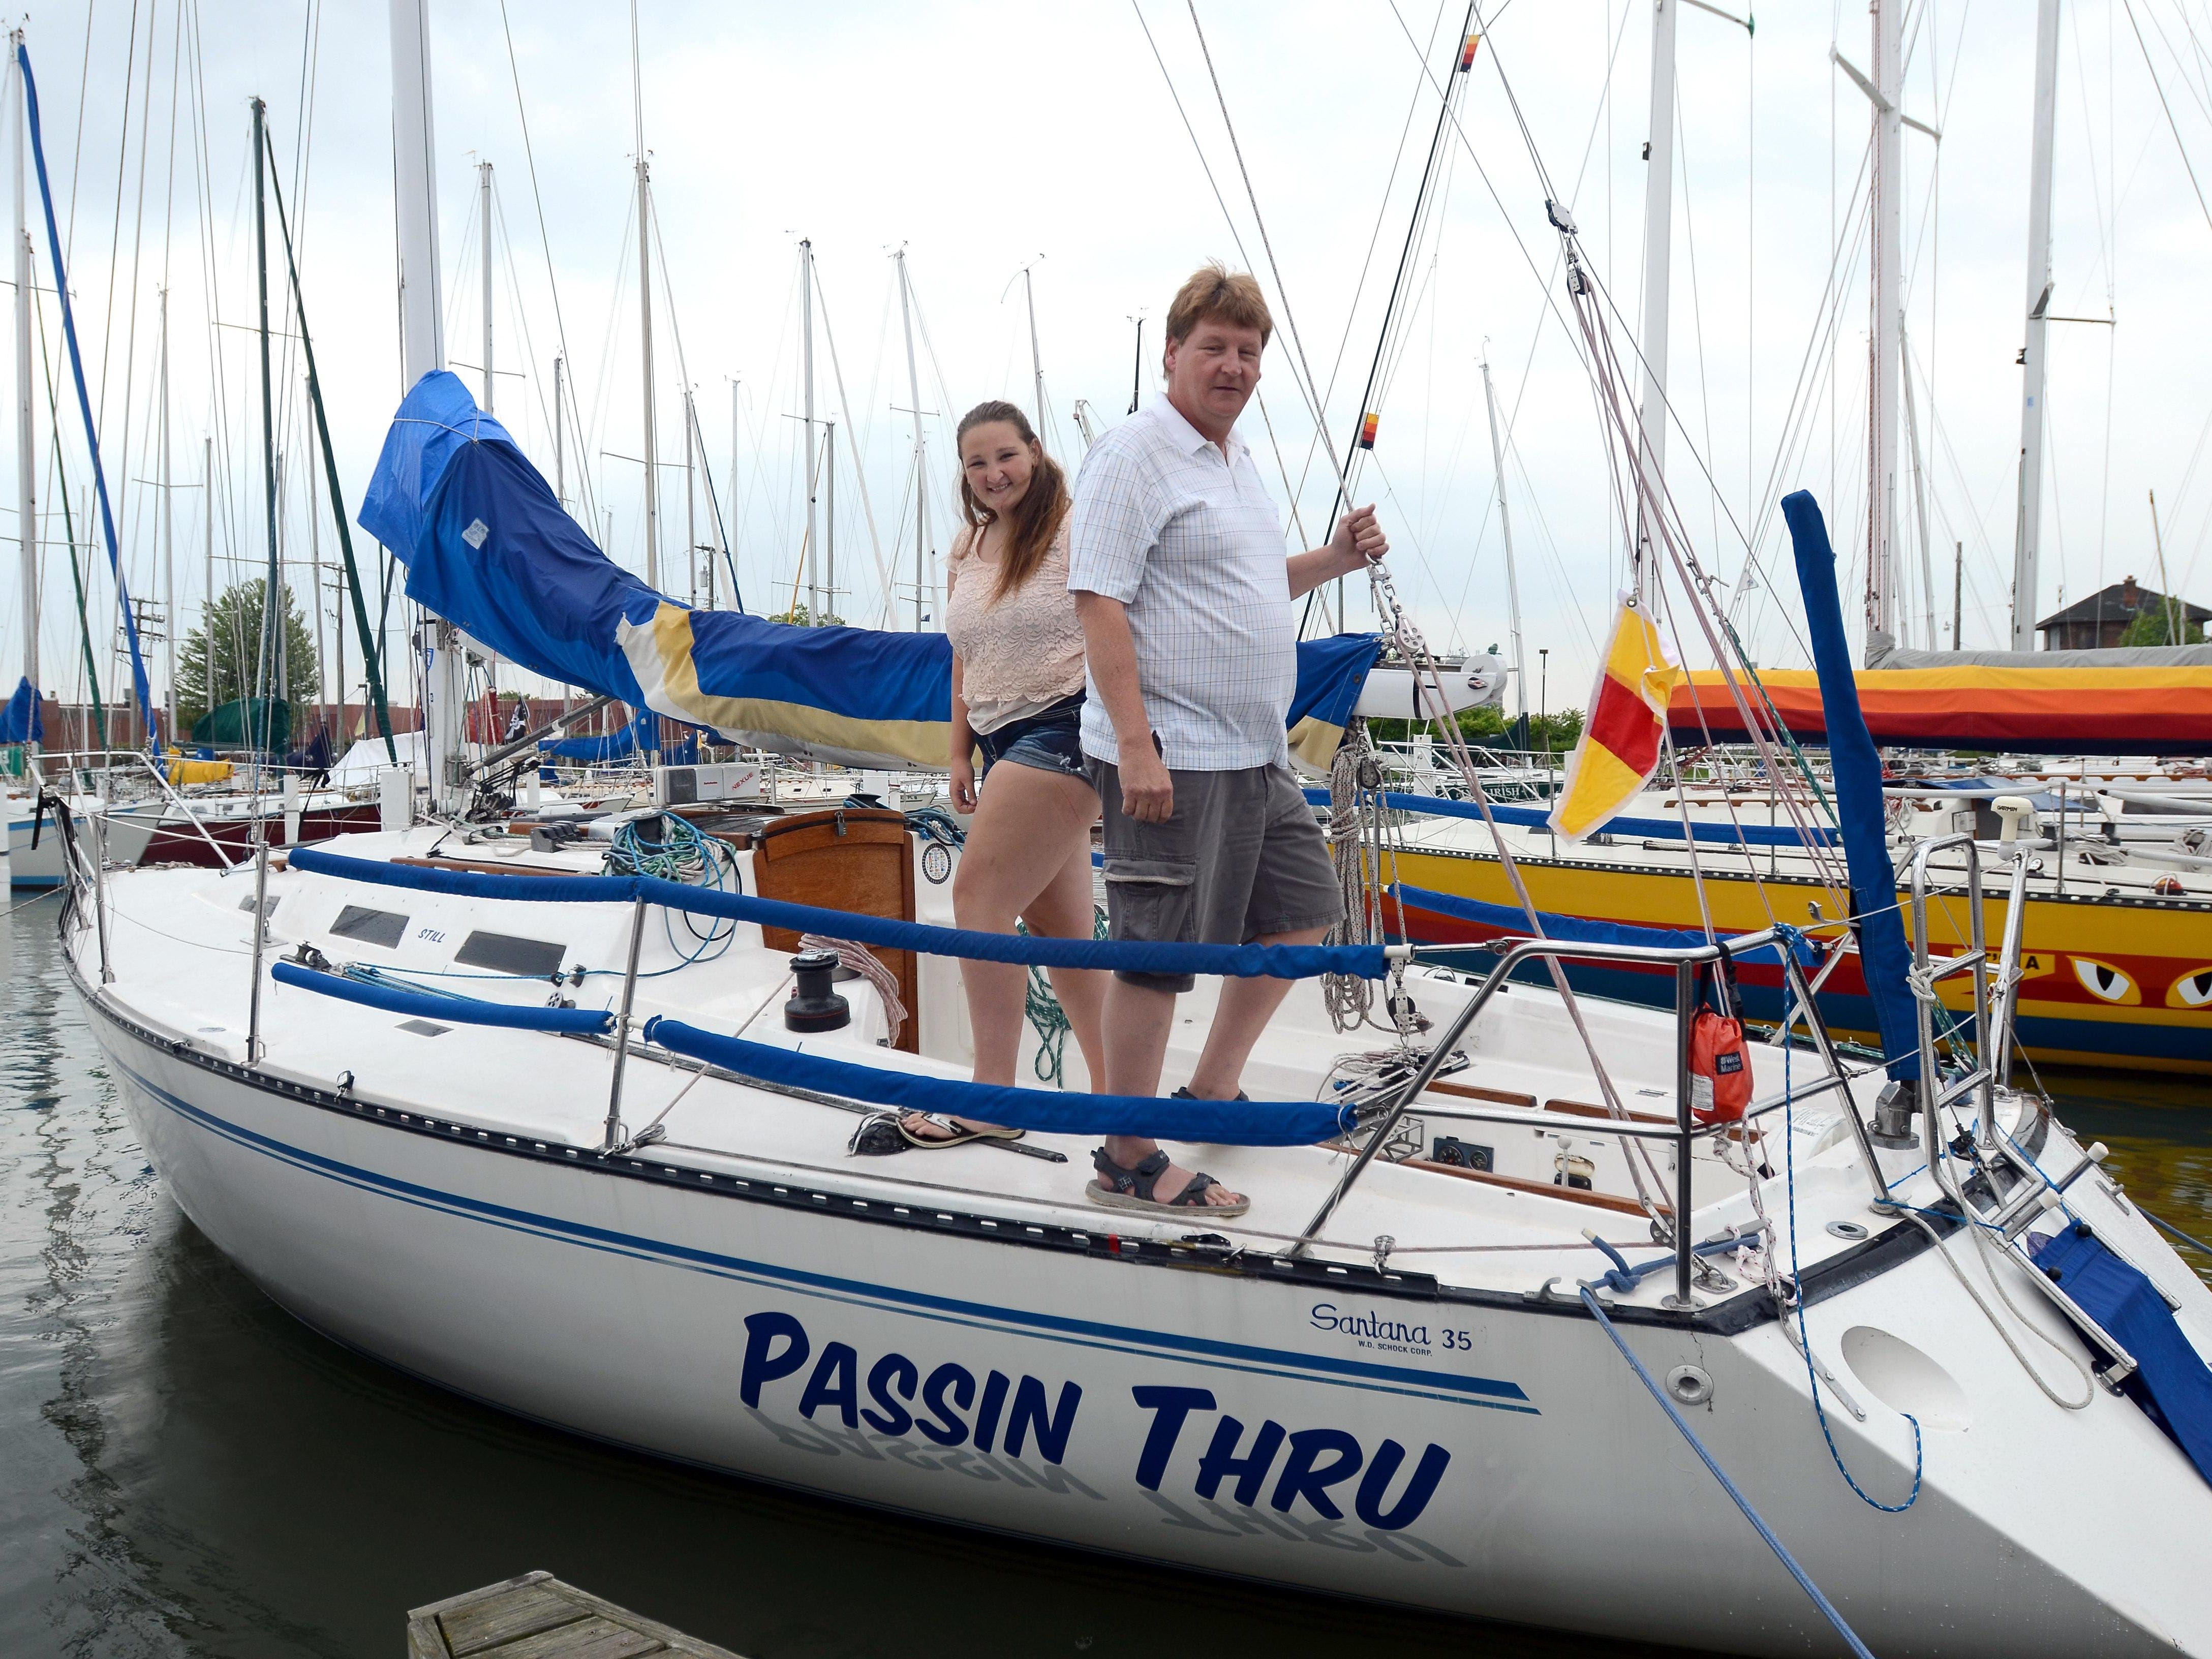 Dave Knupp will have his daughter Olivia, 15, on his crew for this year's Port Huron-to-Mackinac Island sailboat race, her first as a competitor.